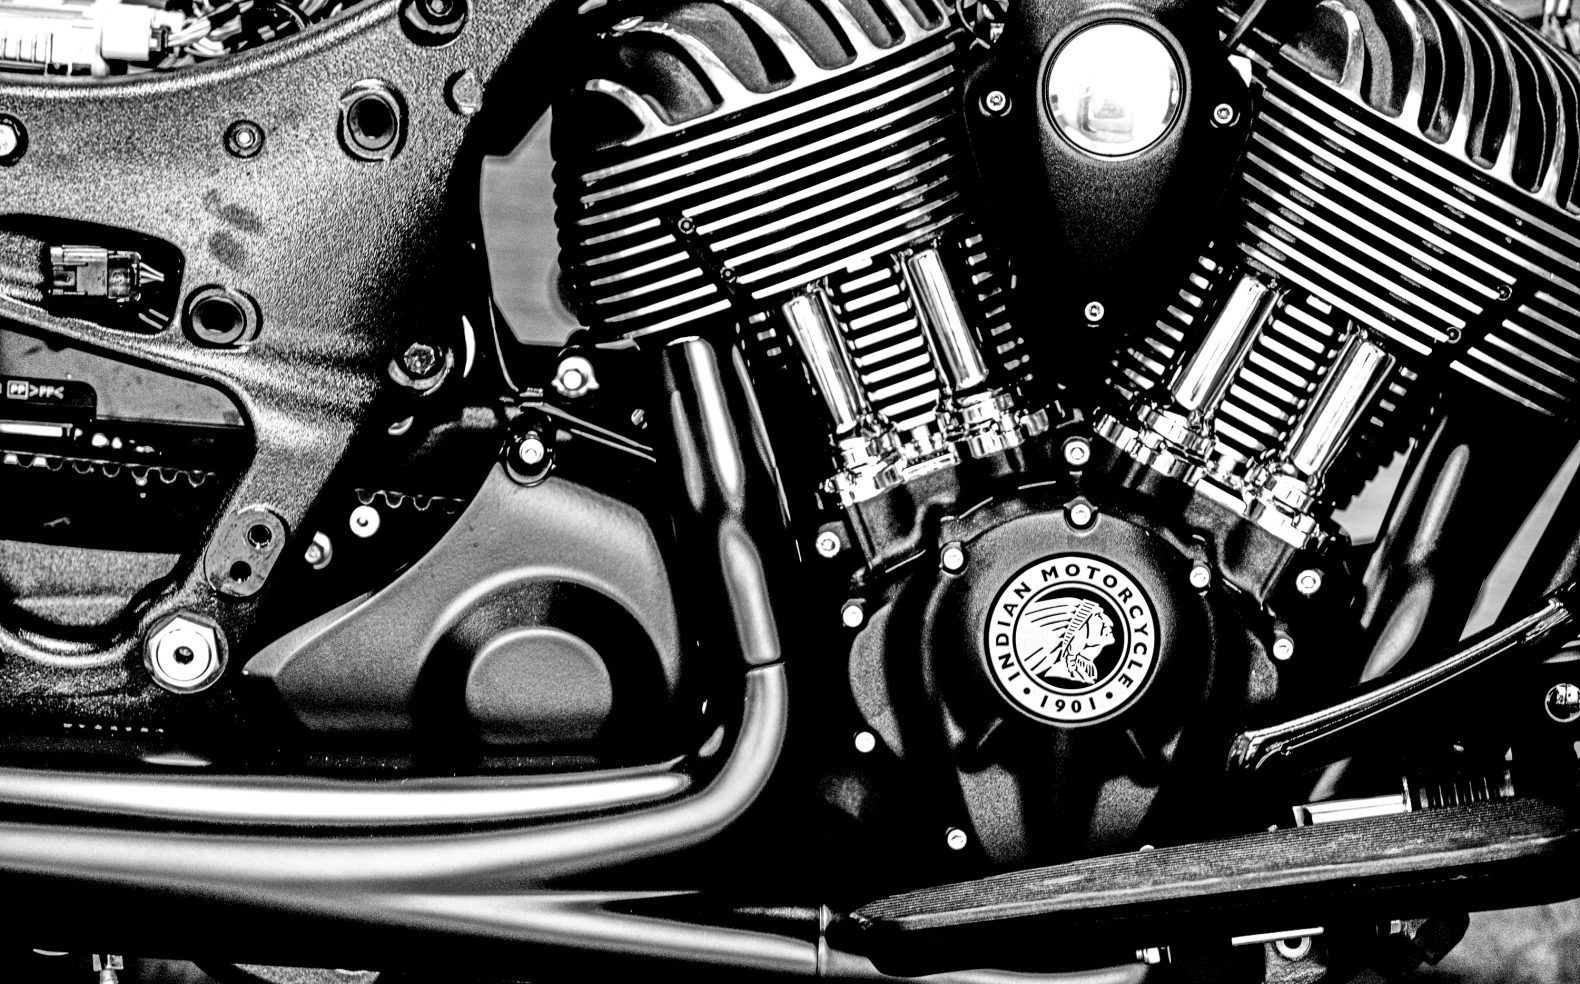 Black and white close-up photograph of a motorcycle engine that is powder coated in flat black paint.